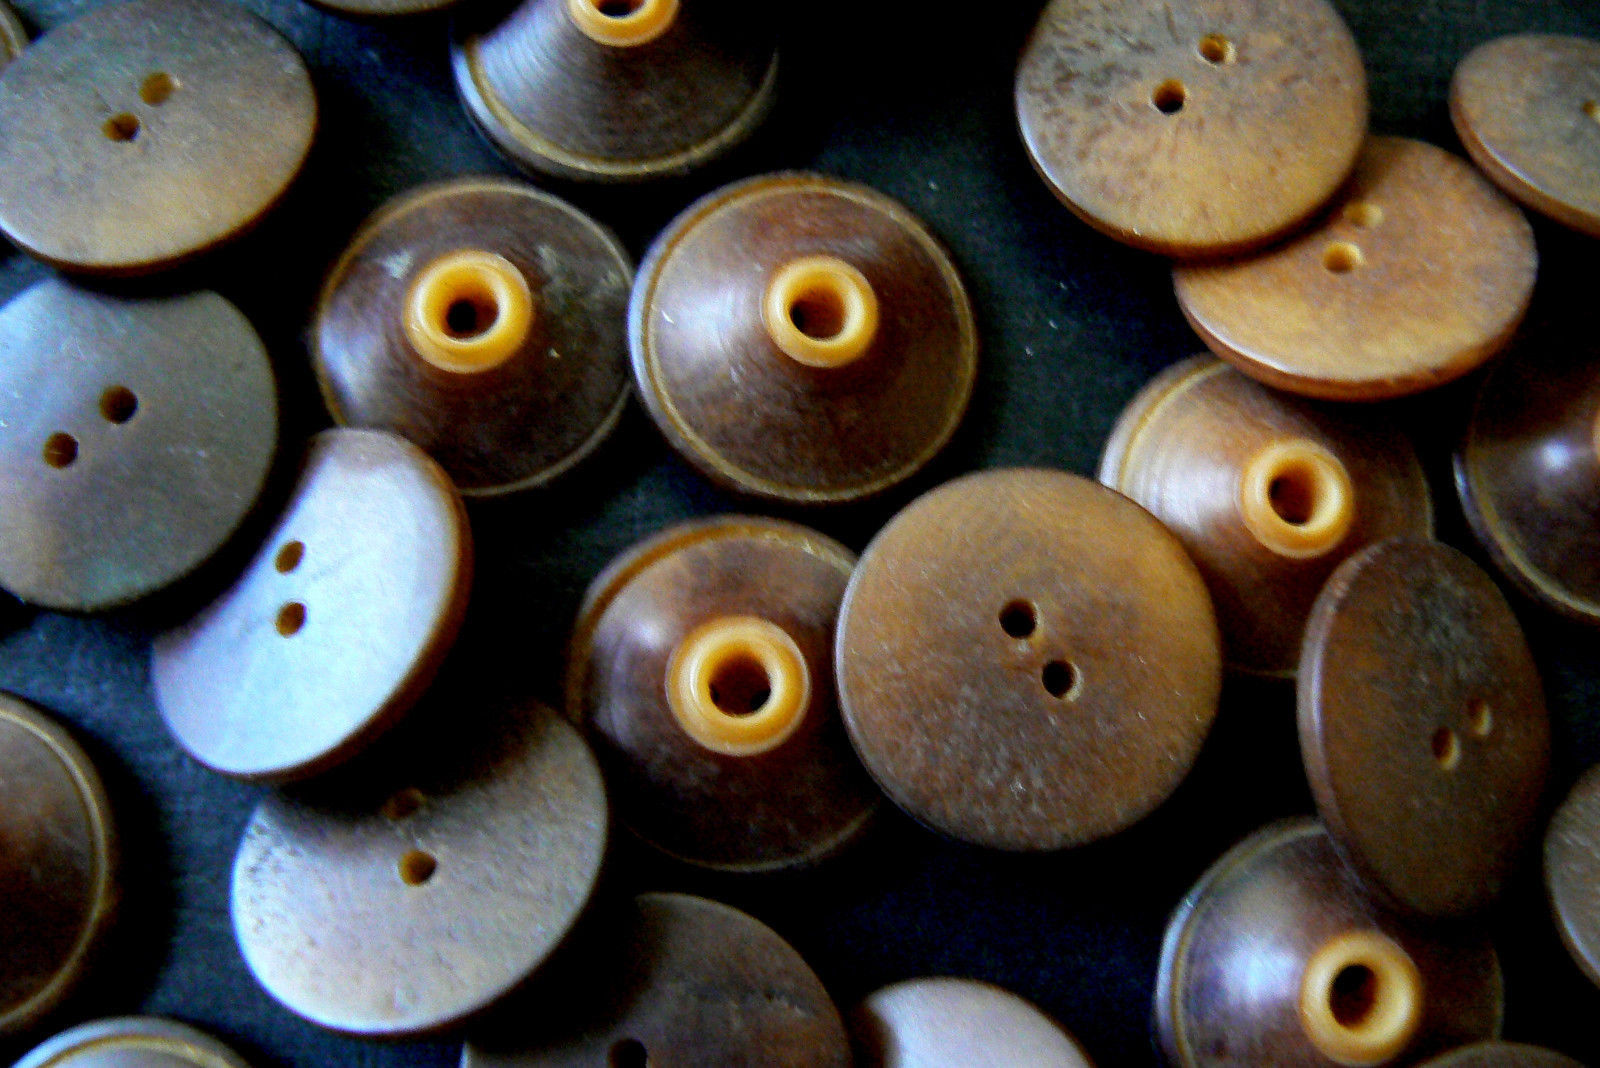 Primary image for Lot of 28 VTG Antique Vegetable Ivory Whistle Buttons Brown Tan Mix Color Match